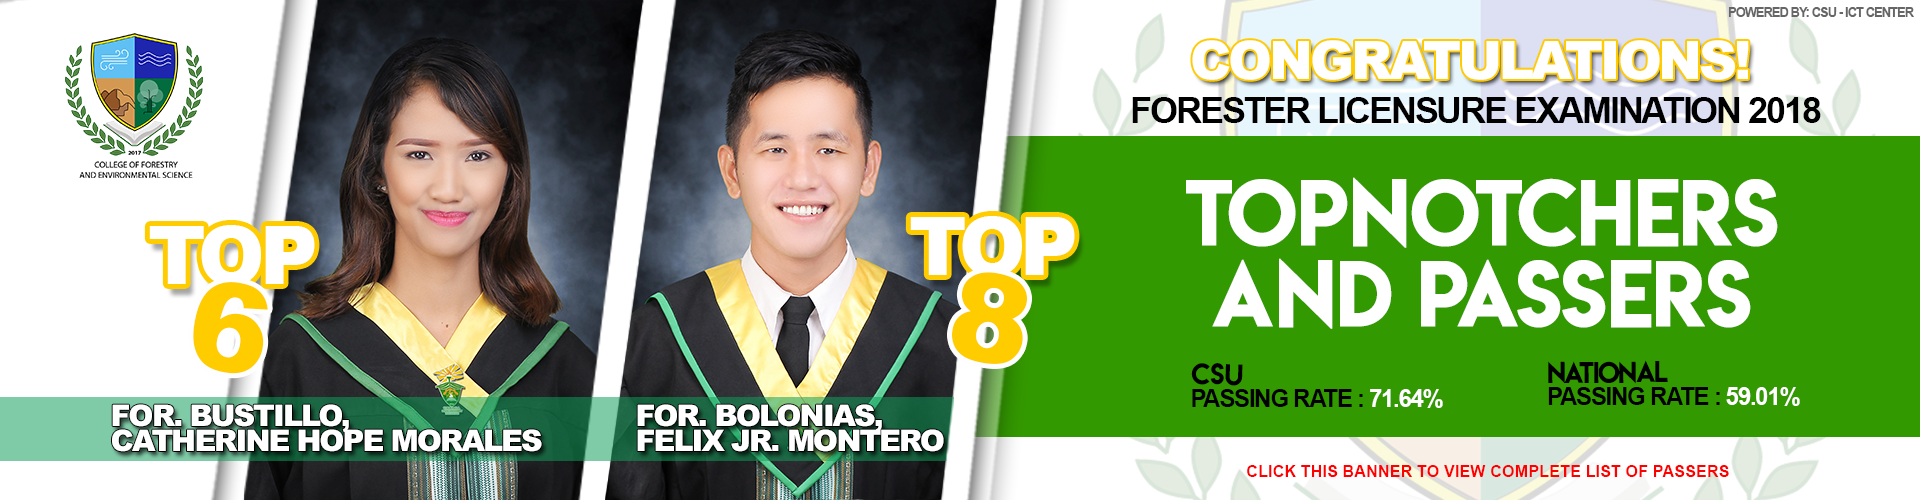 Forester Licensure Examination 2018 Passers